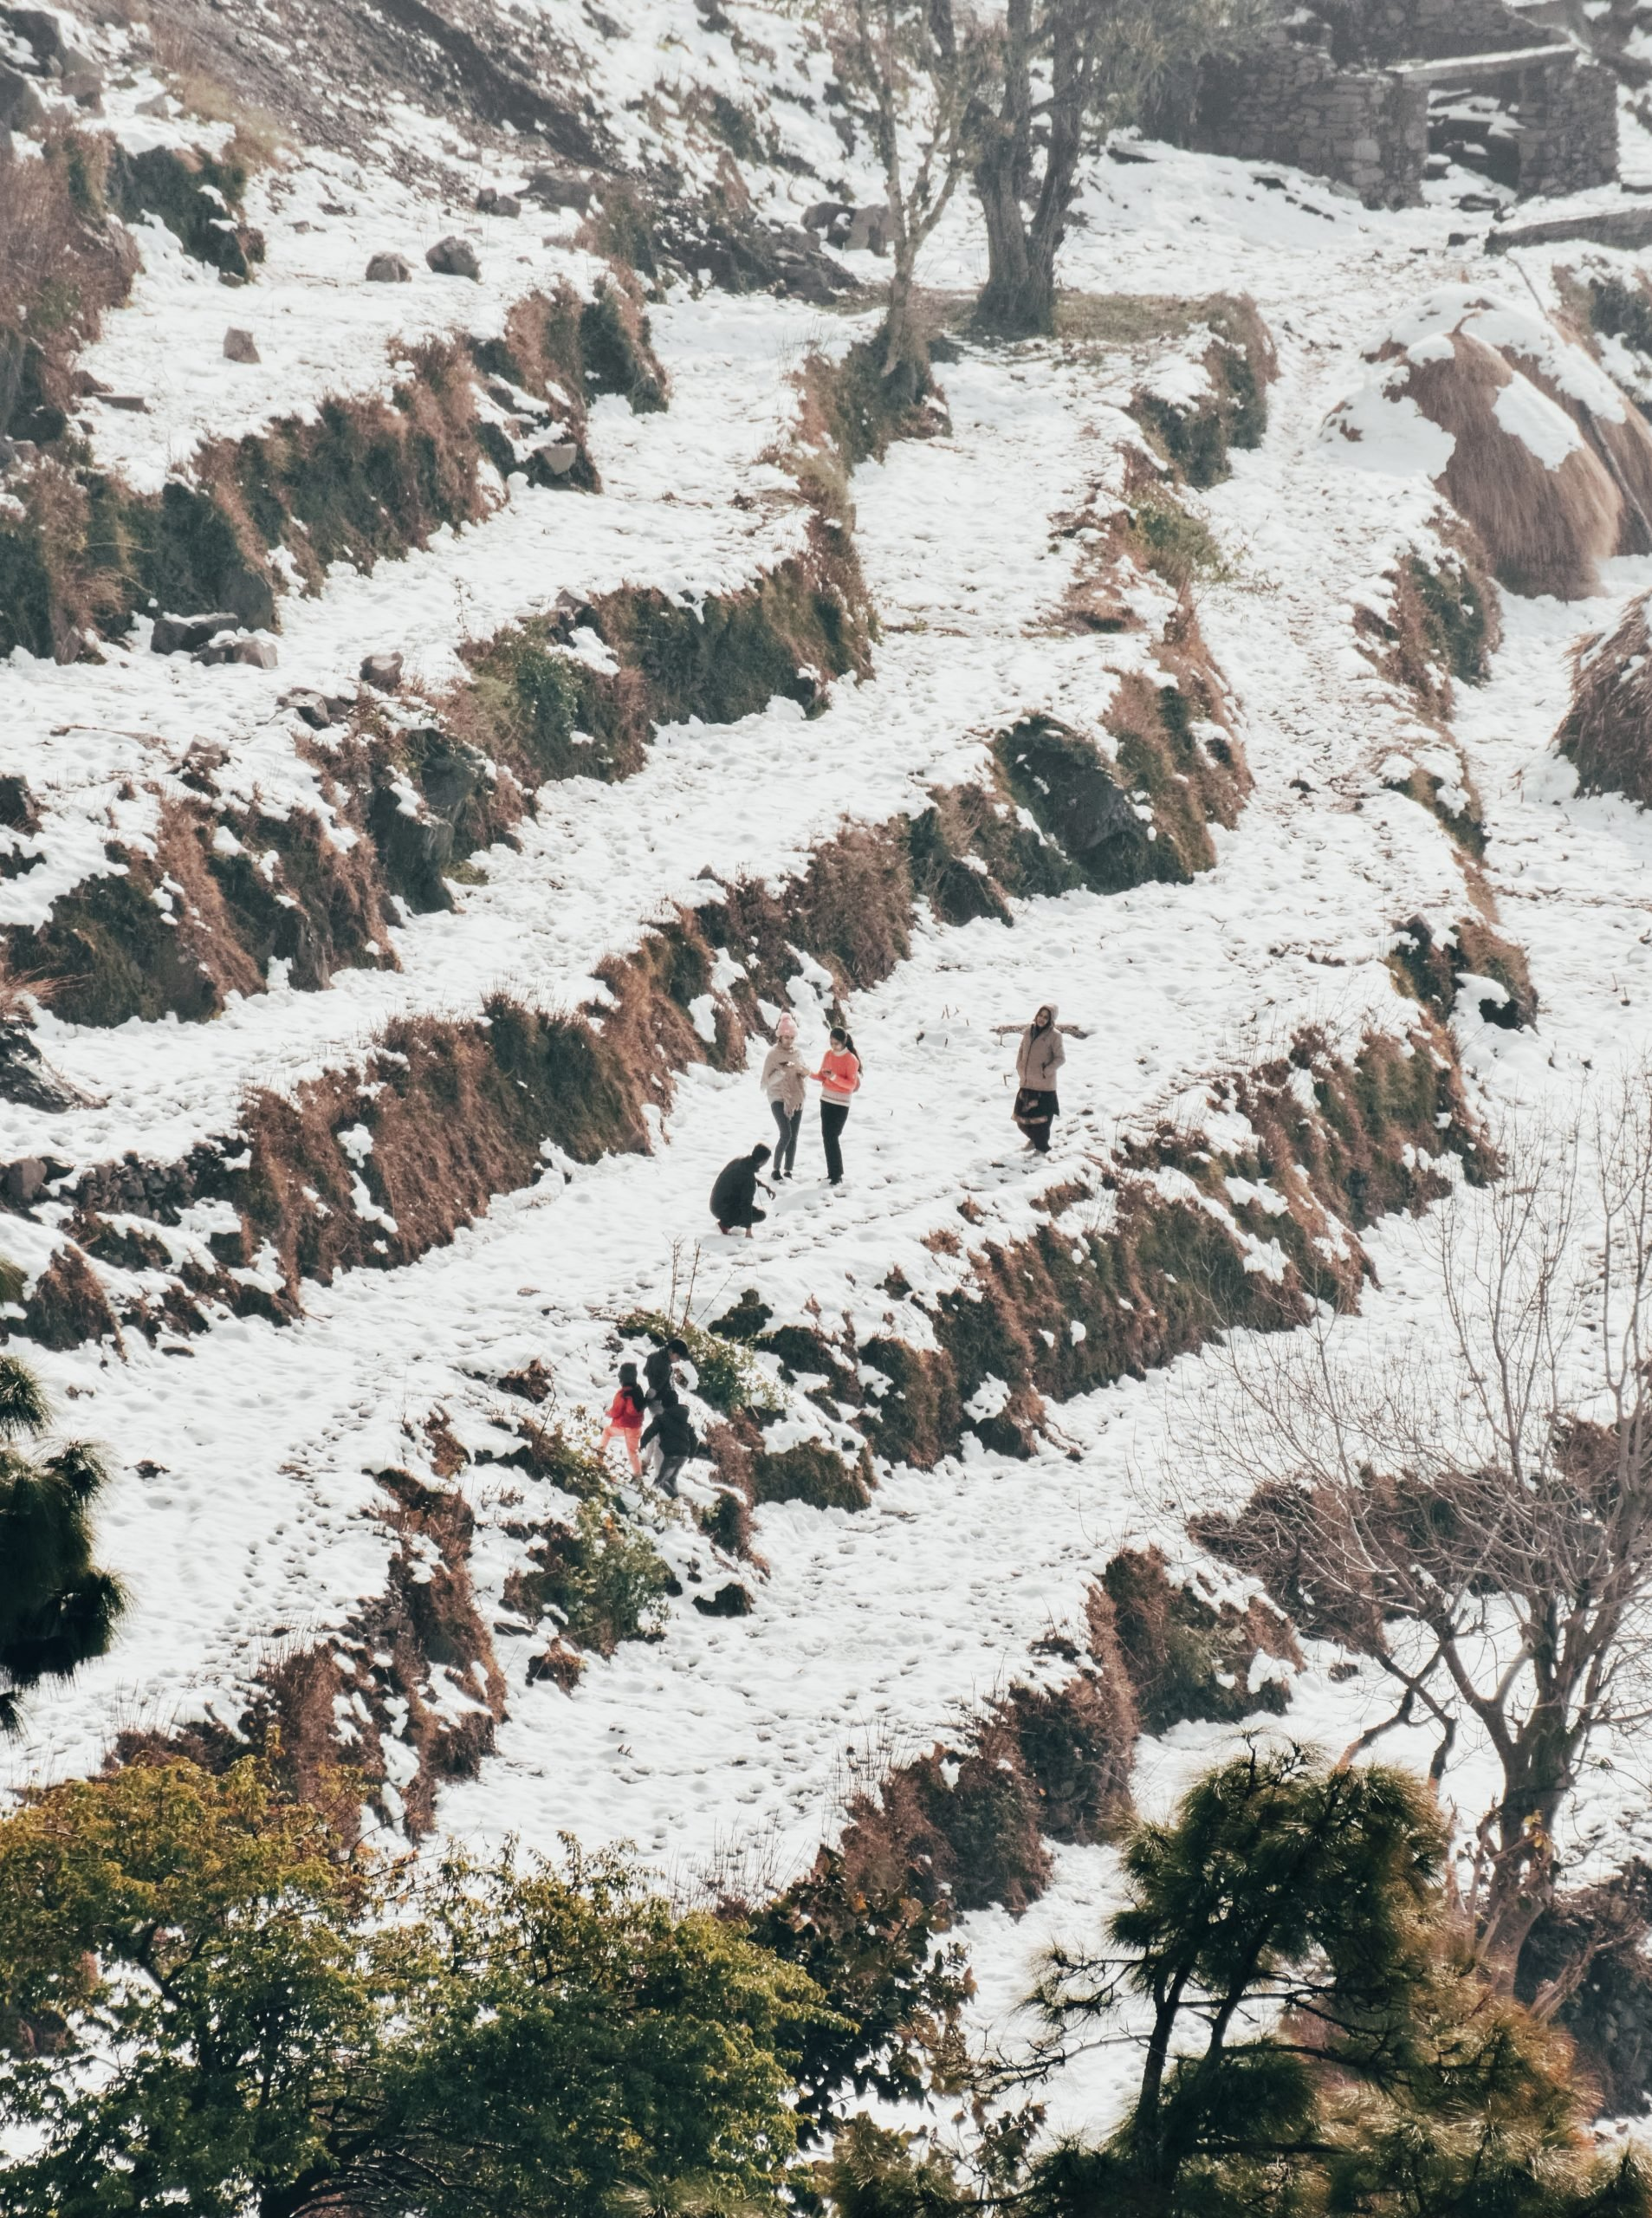 People at snowy fields of mountains